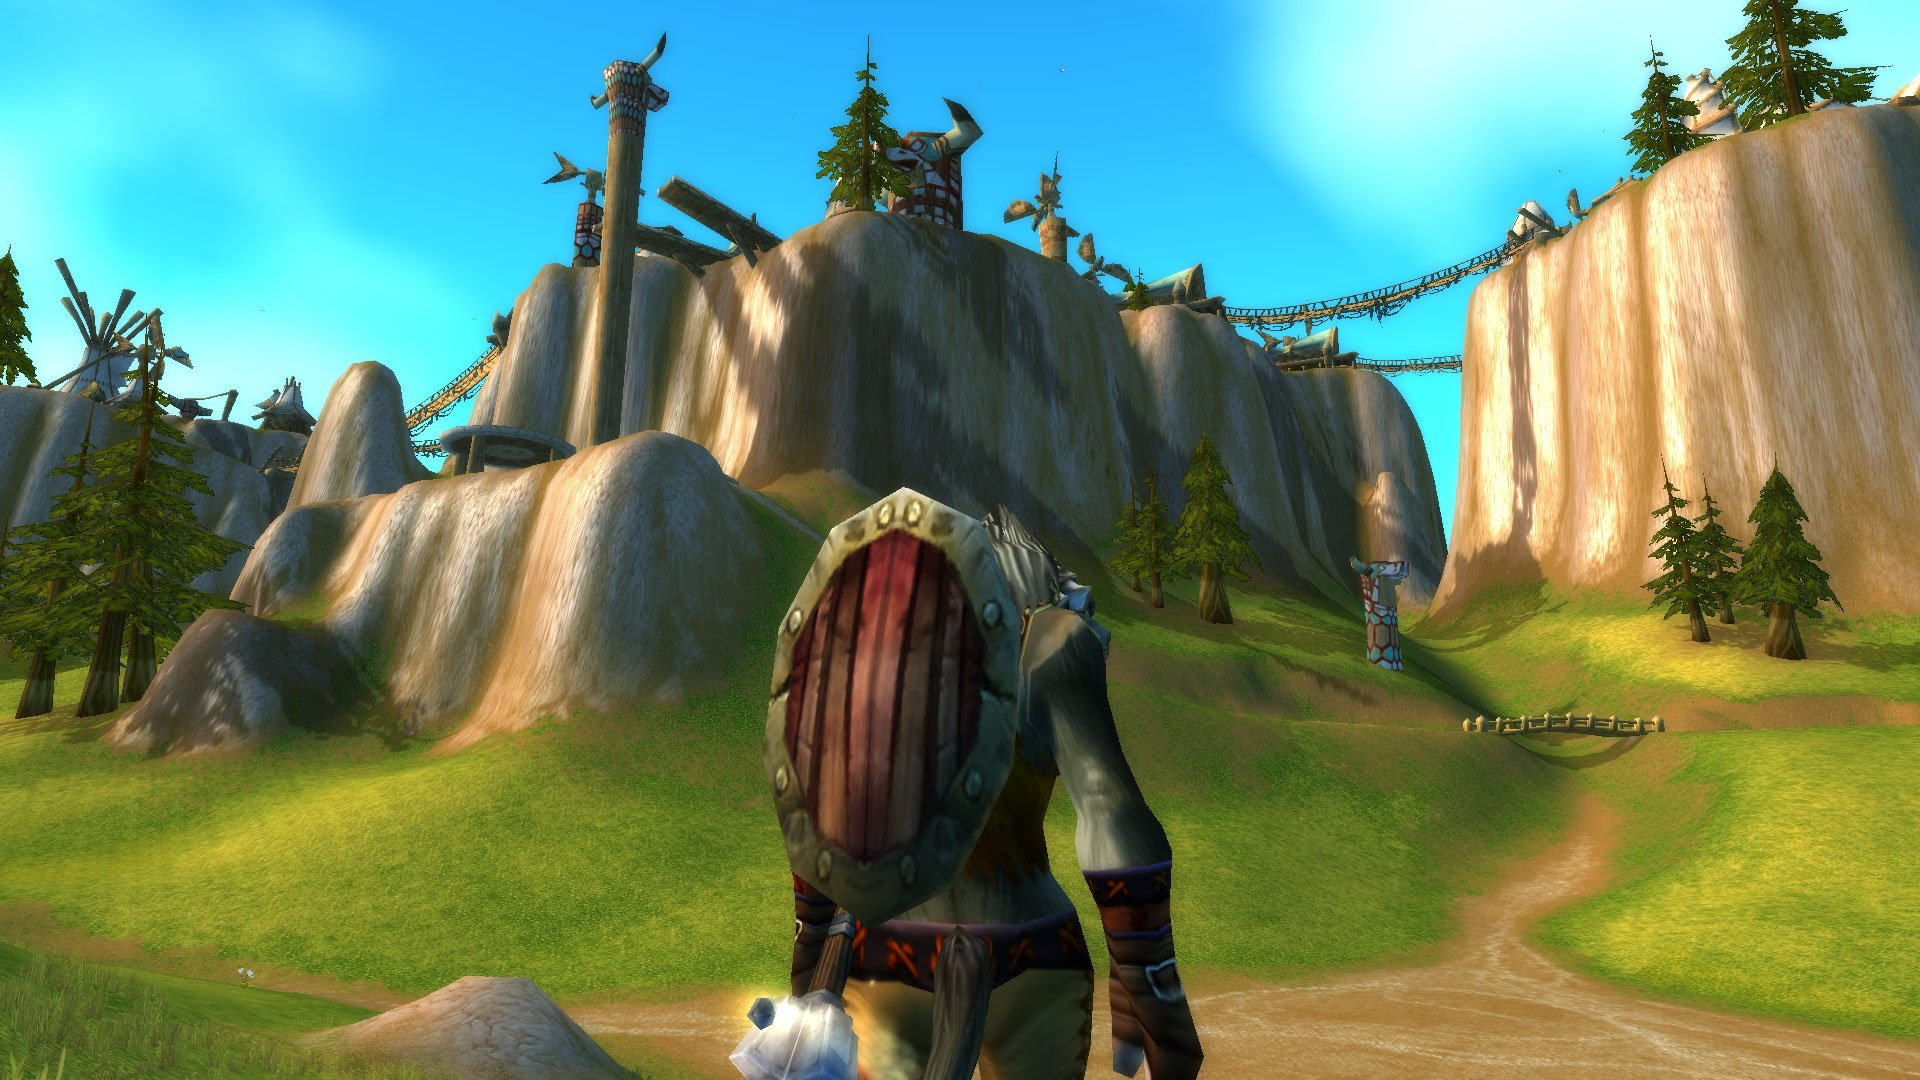 Image from the game World of Warcraft: The taurens' city Thunder Bluff